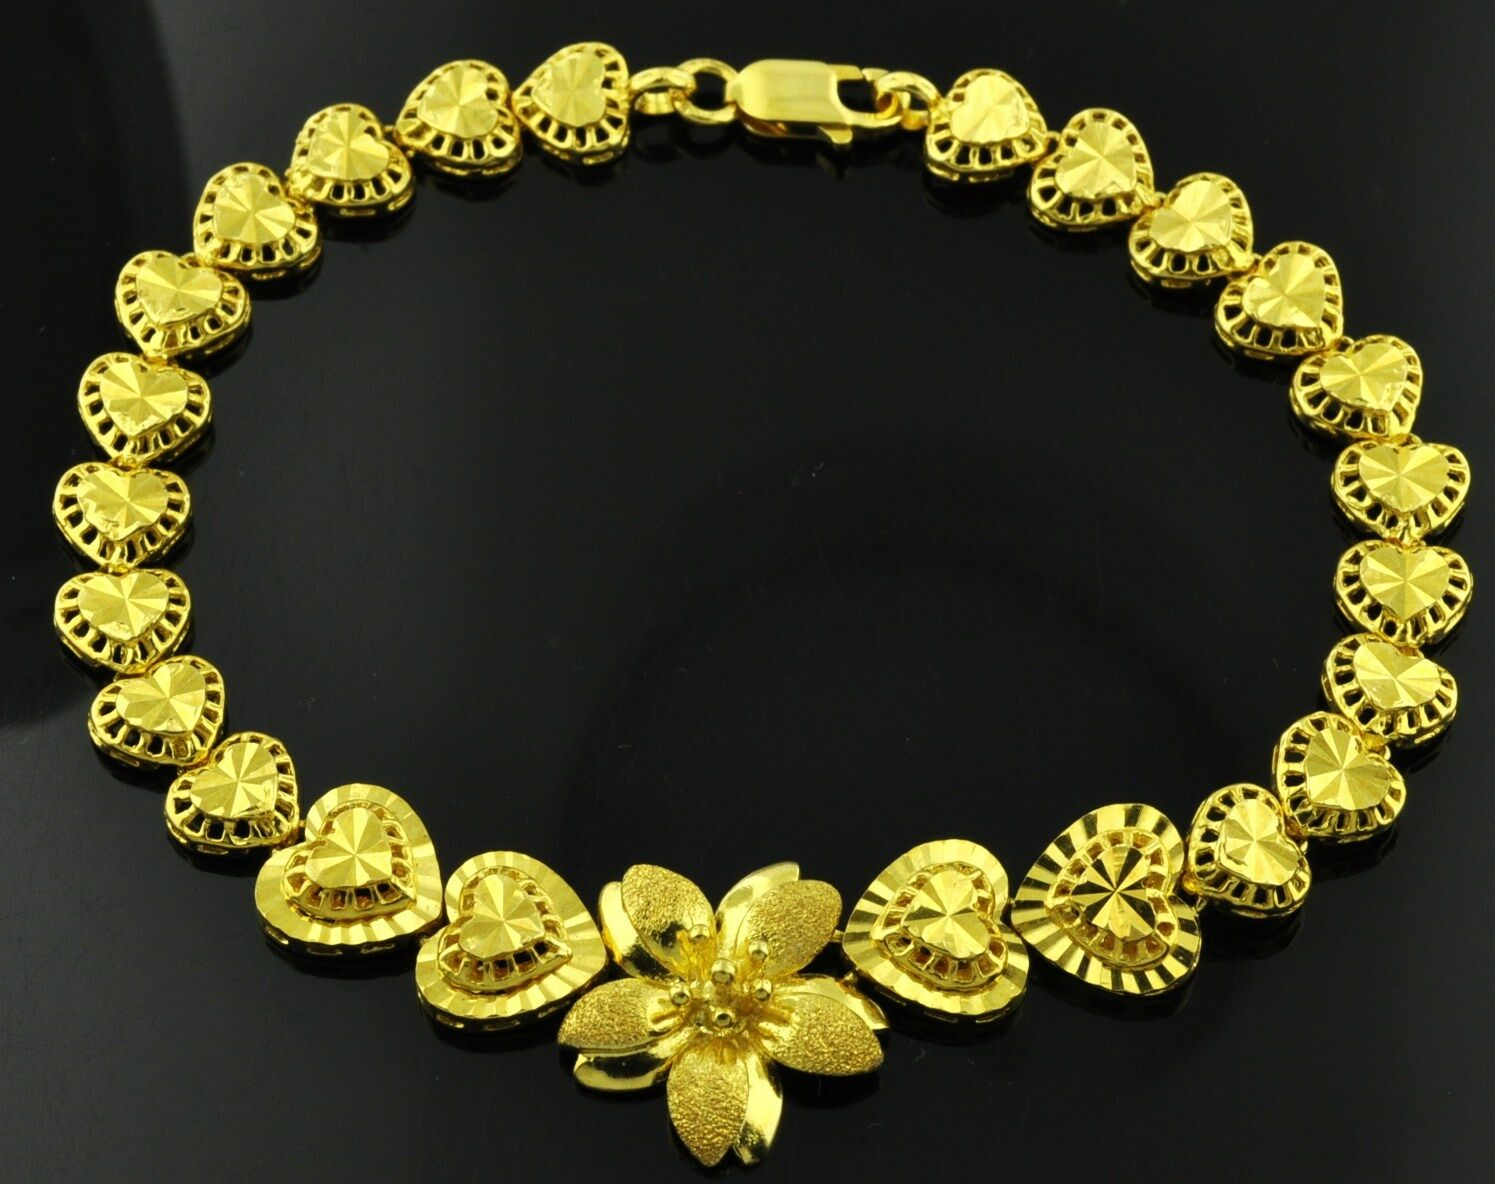 c57928419 18k solid yellow gold flower with heart bracelet 12.50 grams h3jewels